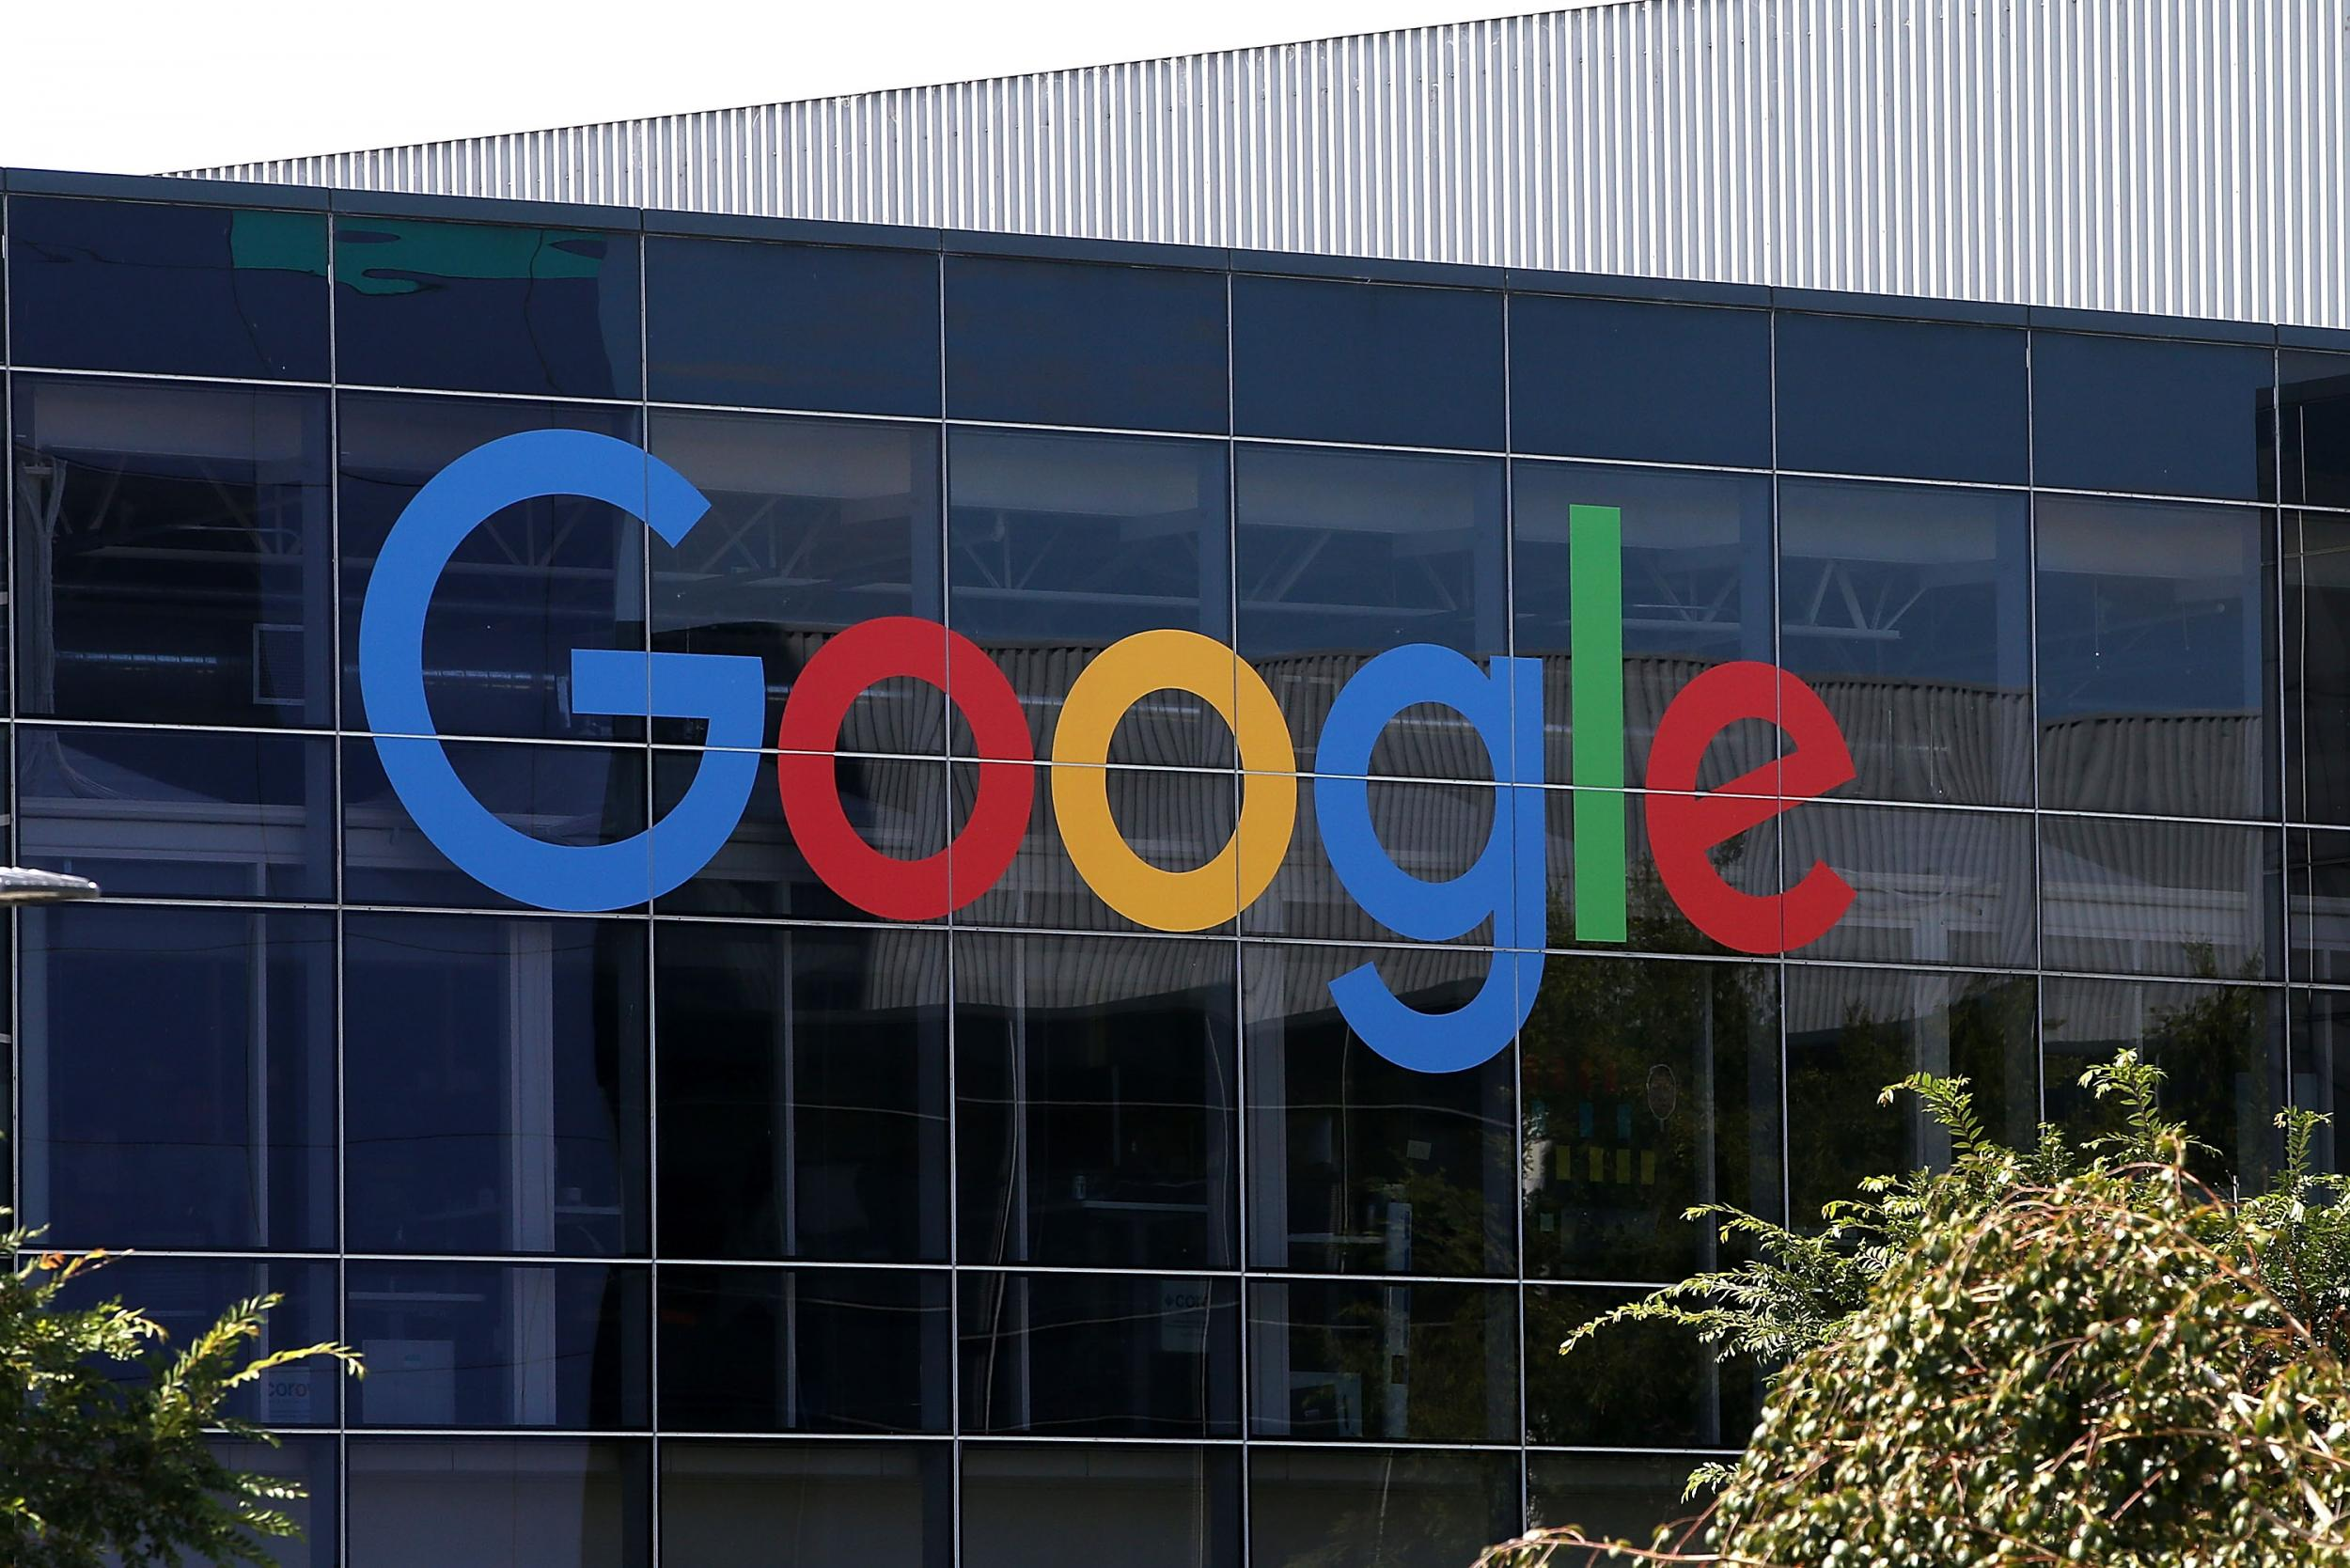 EU hits Google with hefty $5b fine over Android dominance